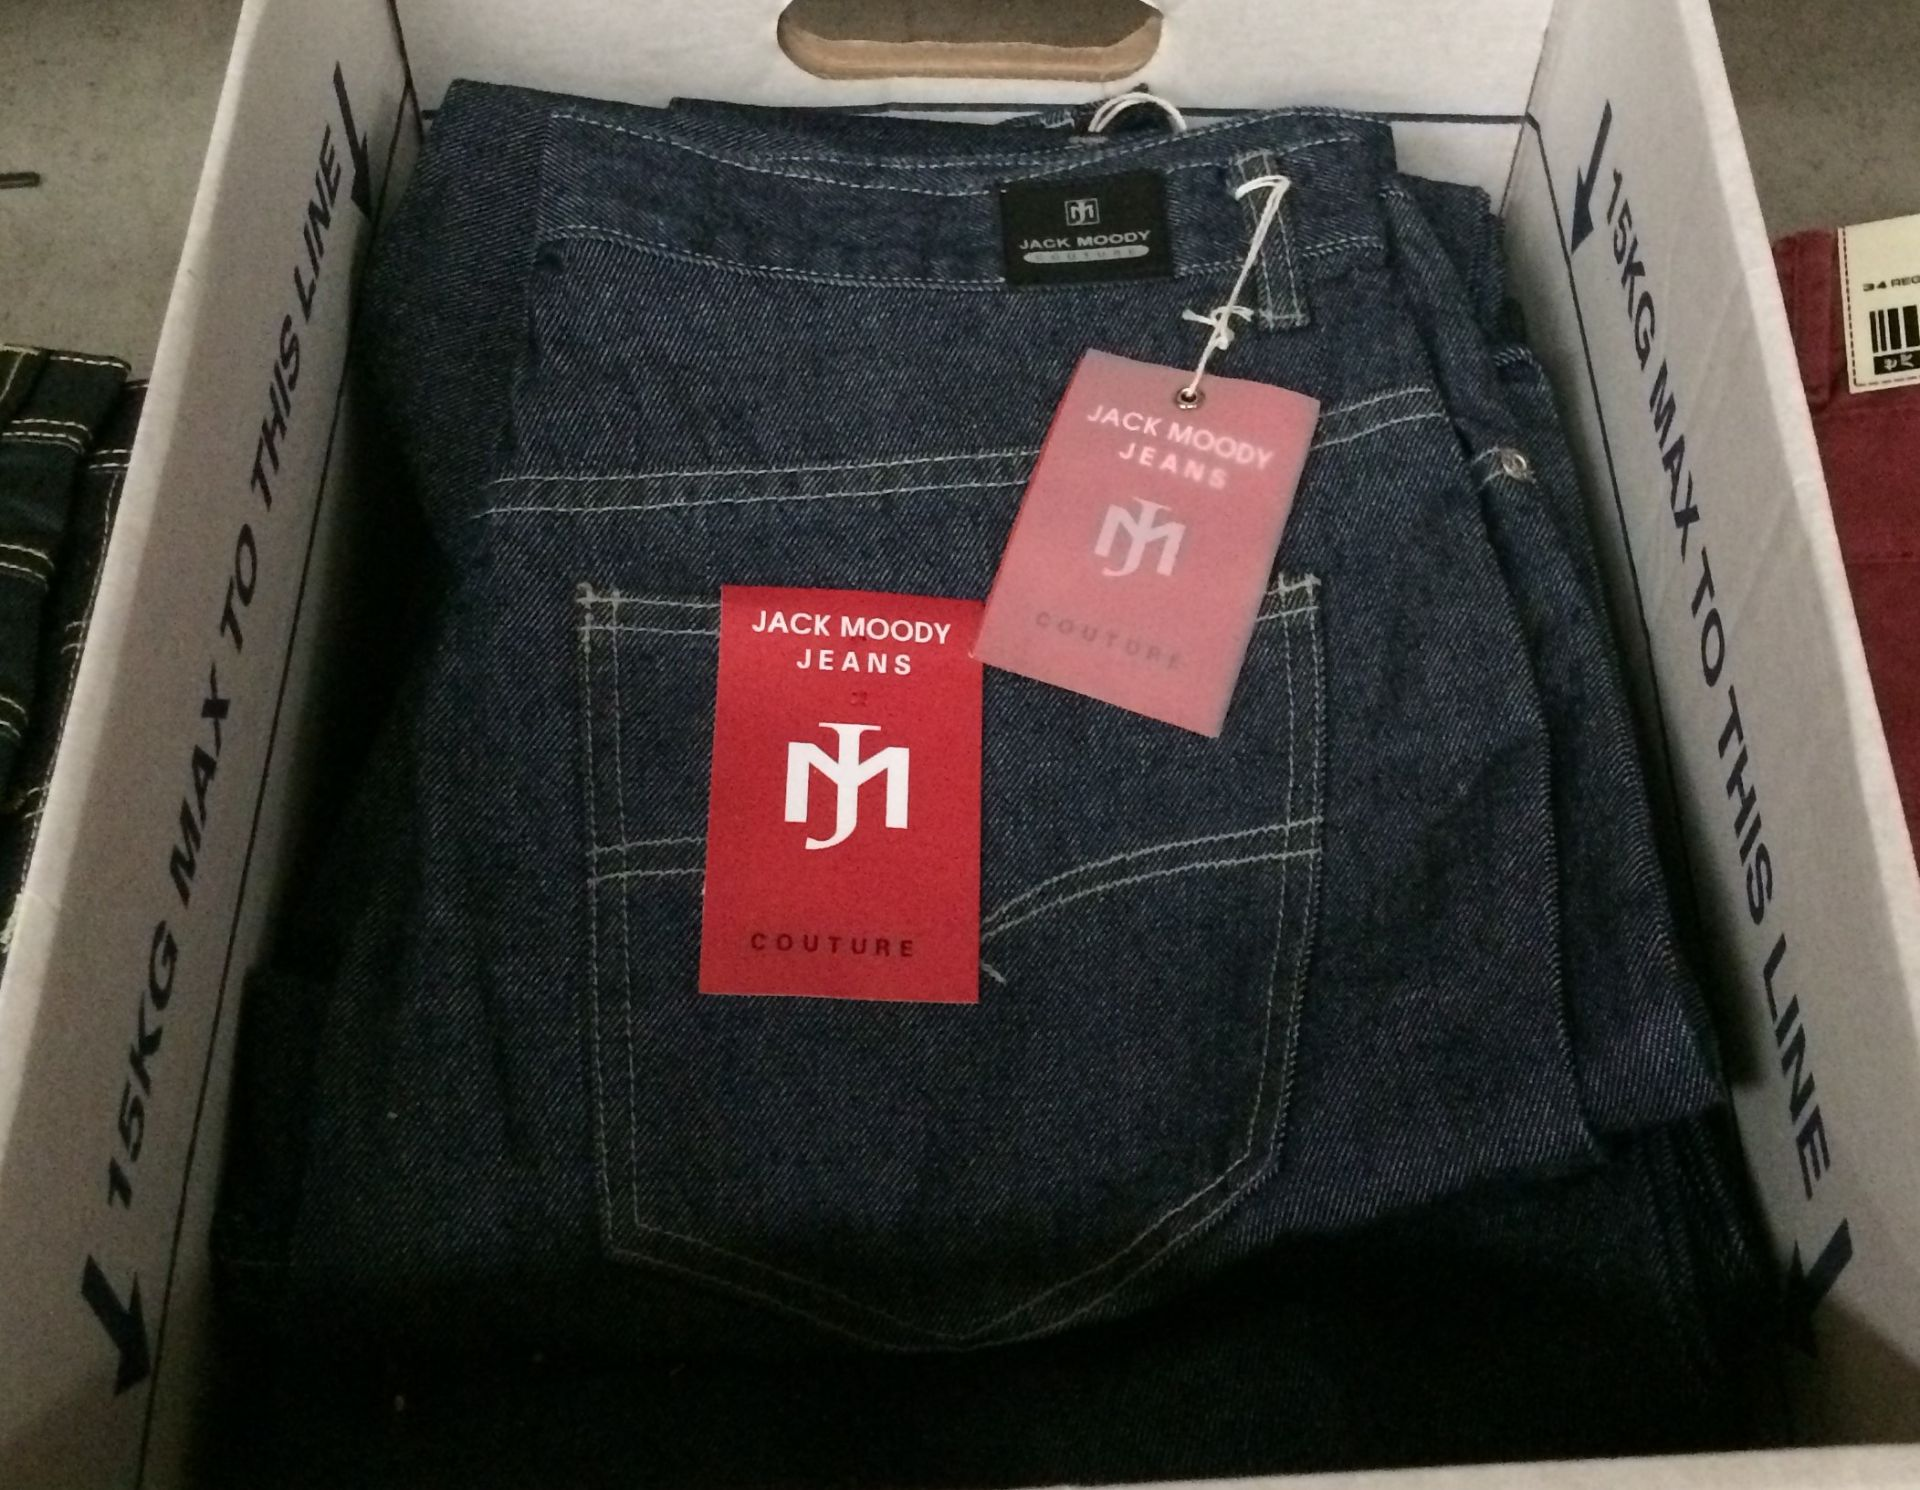 Lot 7 - 10 x pairs of blue denim jeans by Jack Moody - sizes 30, 32, 34,